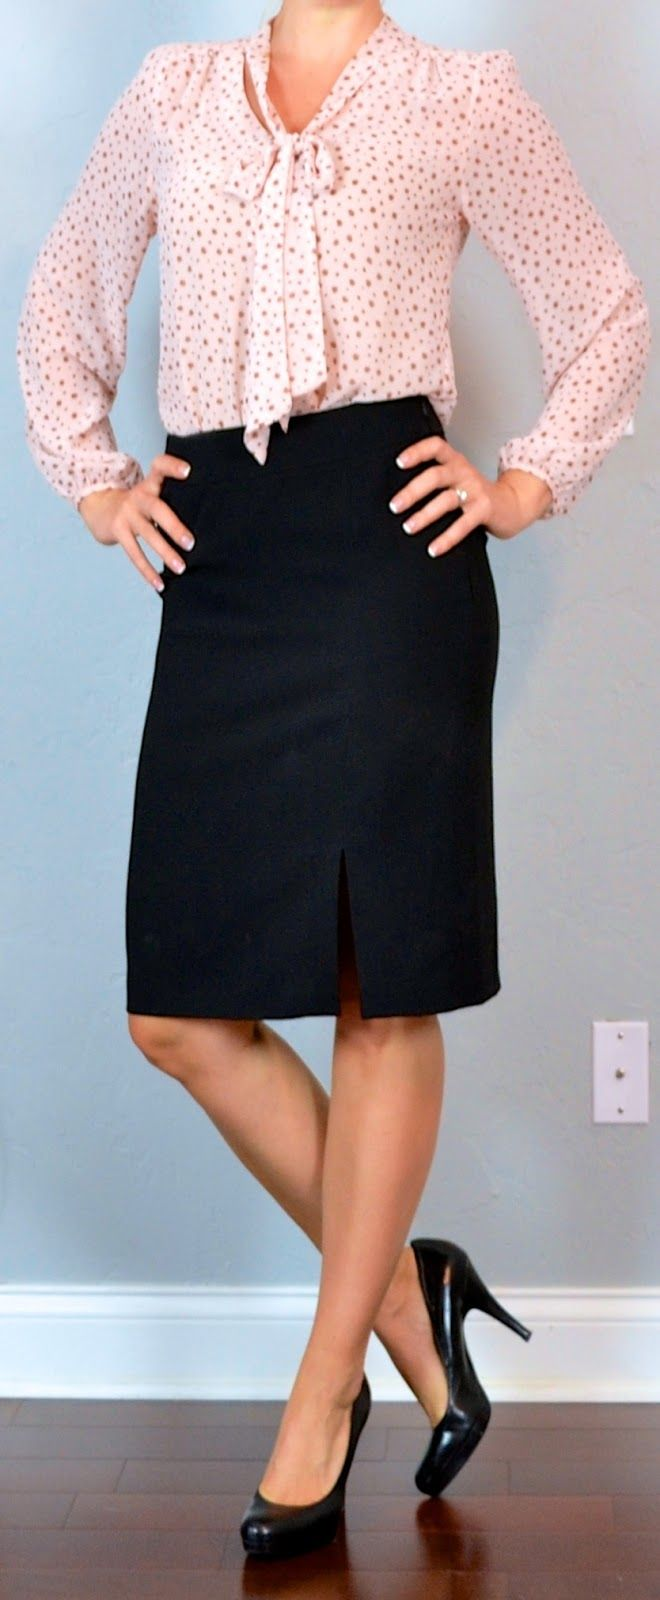 outfit post: pink tie front blouse, black pencil skirt, black pumps | Outfit Posts